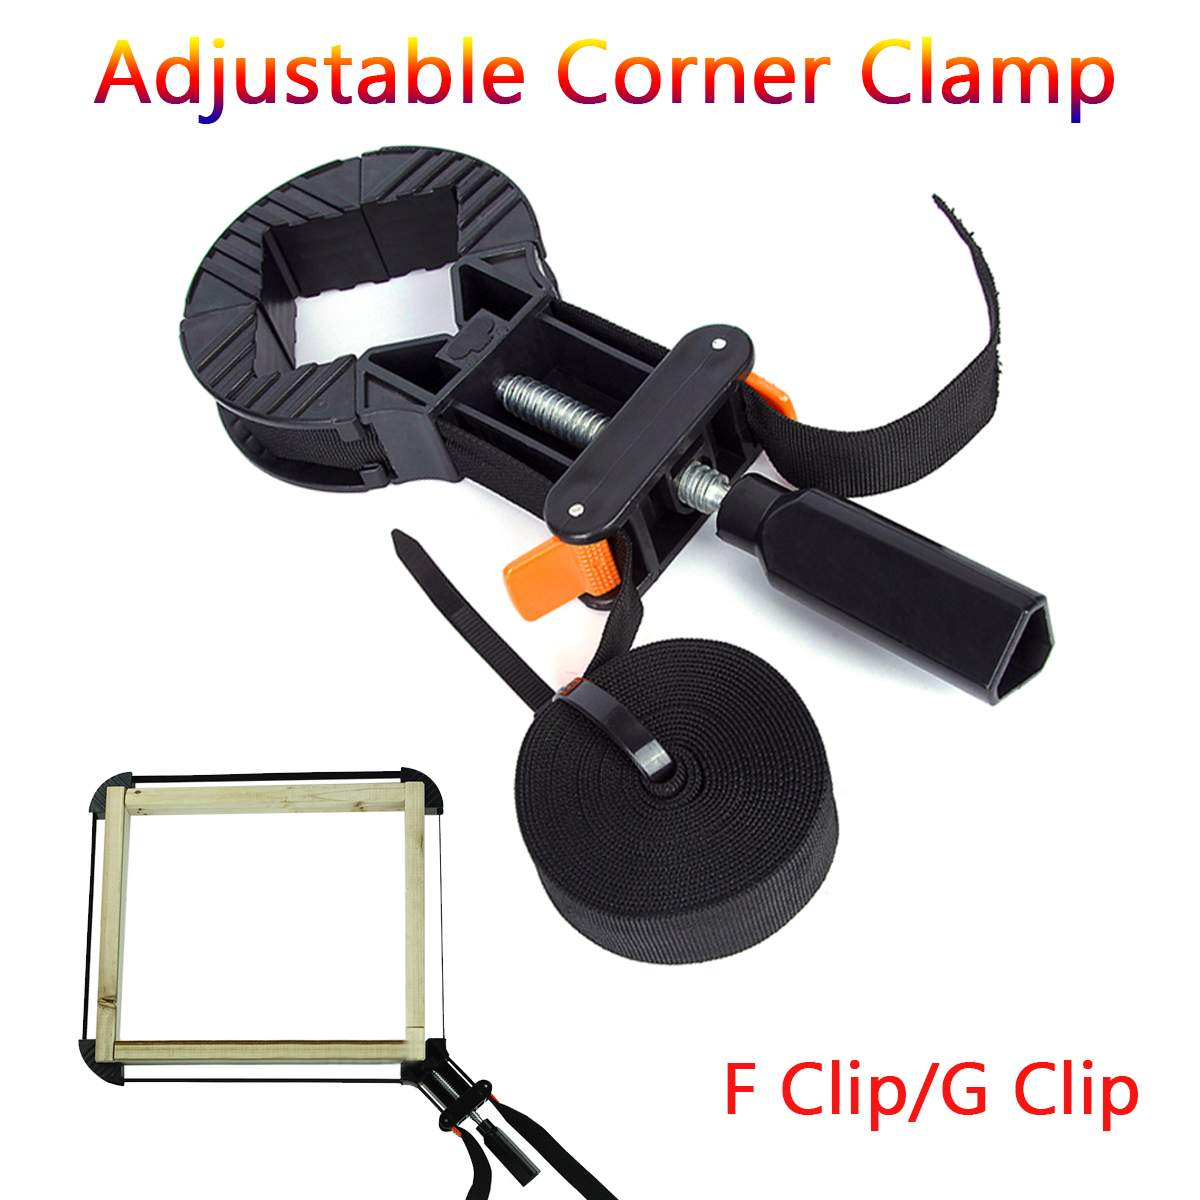 Quick Adjustable Corner Clamp Strap Blet Corner Clamps for Woodworking Photo Frame Tools Multifunction Blet Clamp DIY ToolQuick Adjustable Corner Clamp Strap Blet Corner Clamps for Woodworking Photo Frame Tools Multifunction Blet Clamp DIY Tool